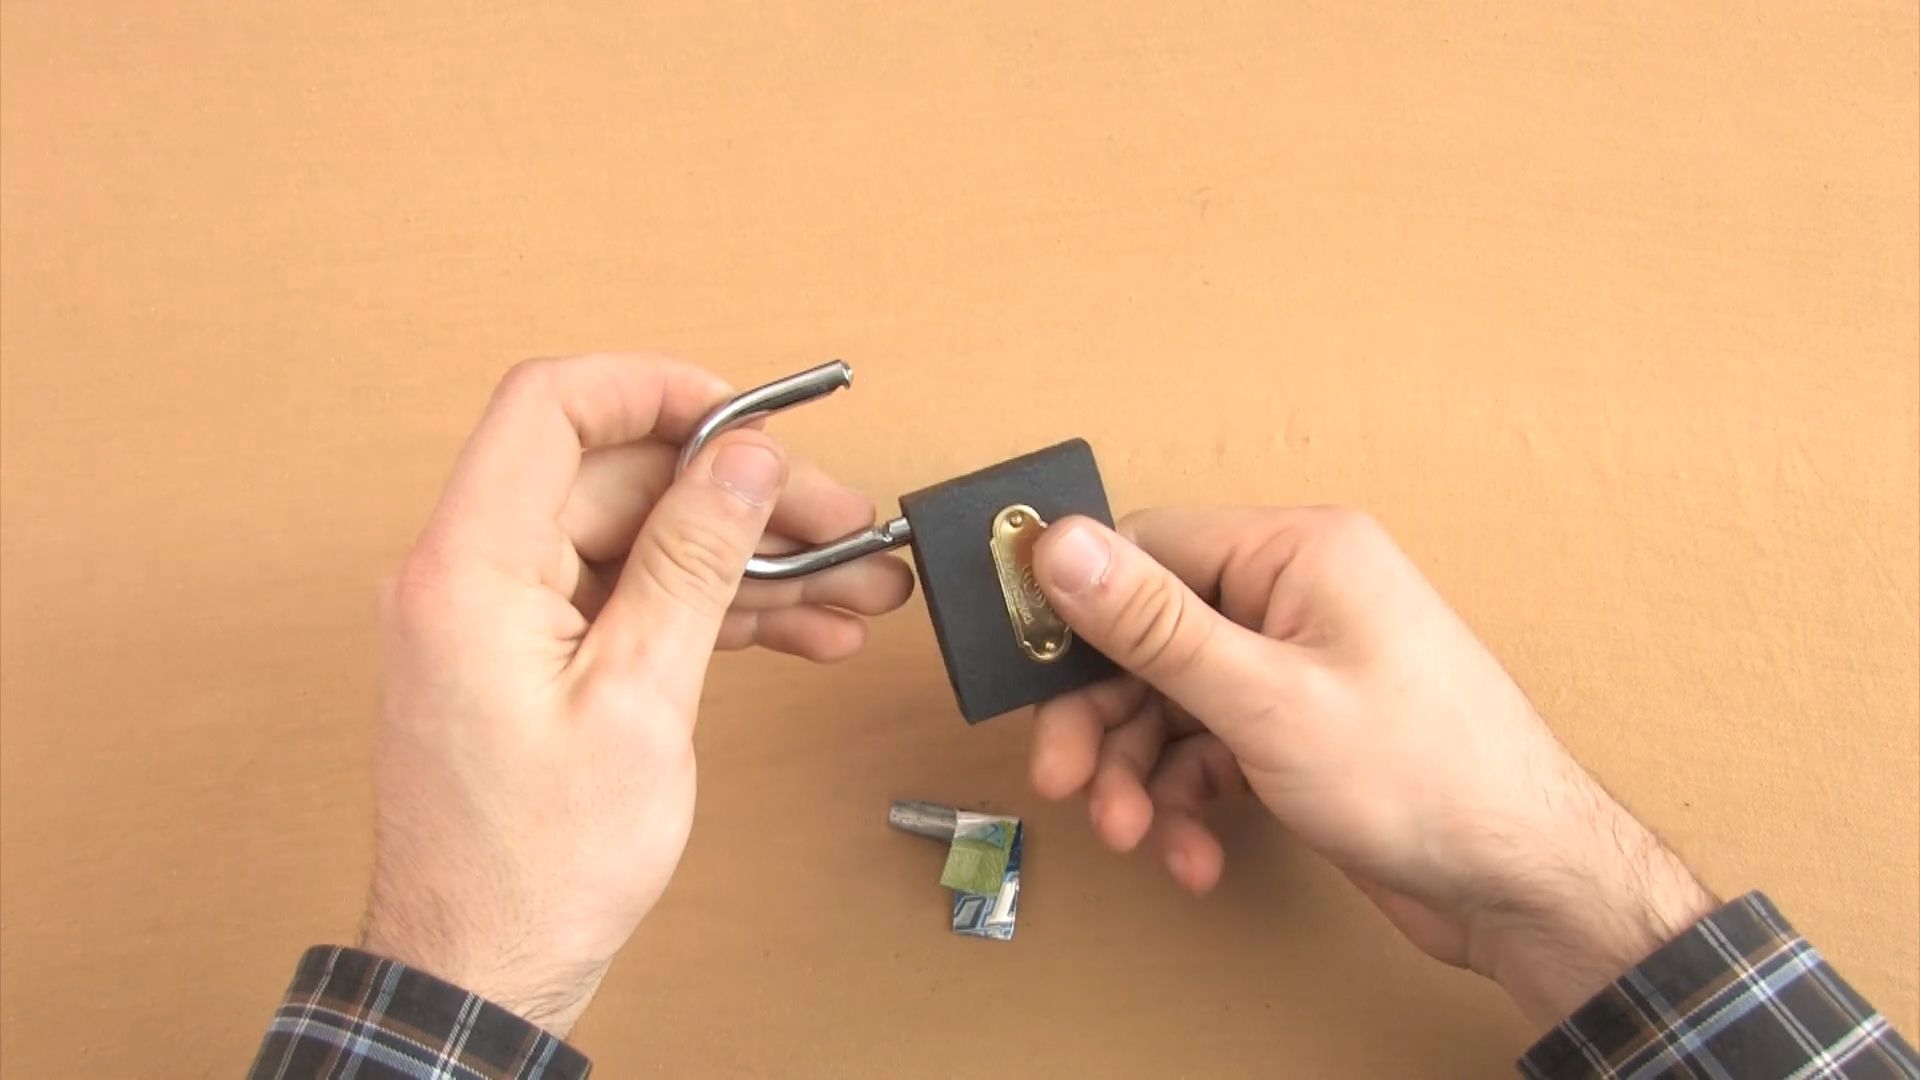 Have you lost the key to a padlock? You could call a locksmith or cut the shackle, but you may be able to quickly and easily open it with a shim, a thin piece of metal that you slide into the locking mechanism. You can buy shims from $2-20, or you can make them with metal you have laying around the house. Here's how to create and use a shim made from an aluminum can.